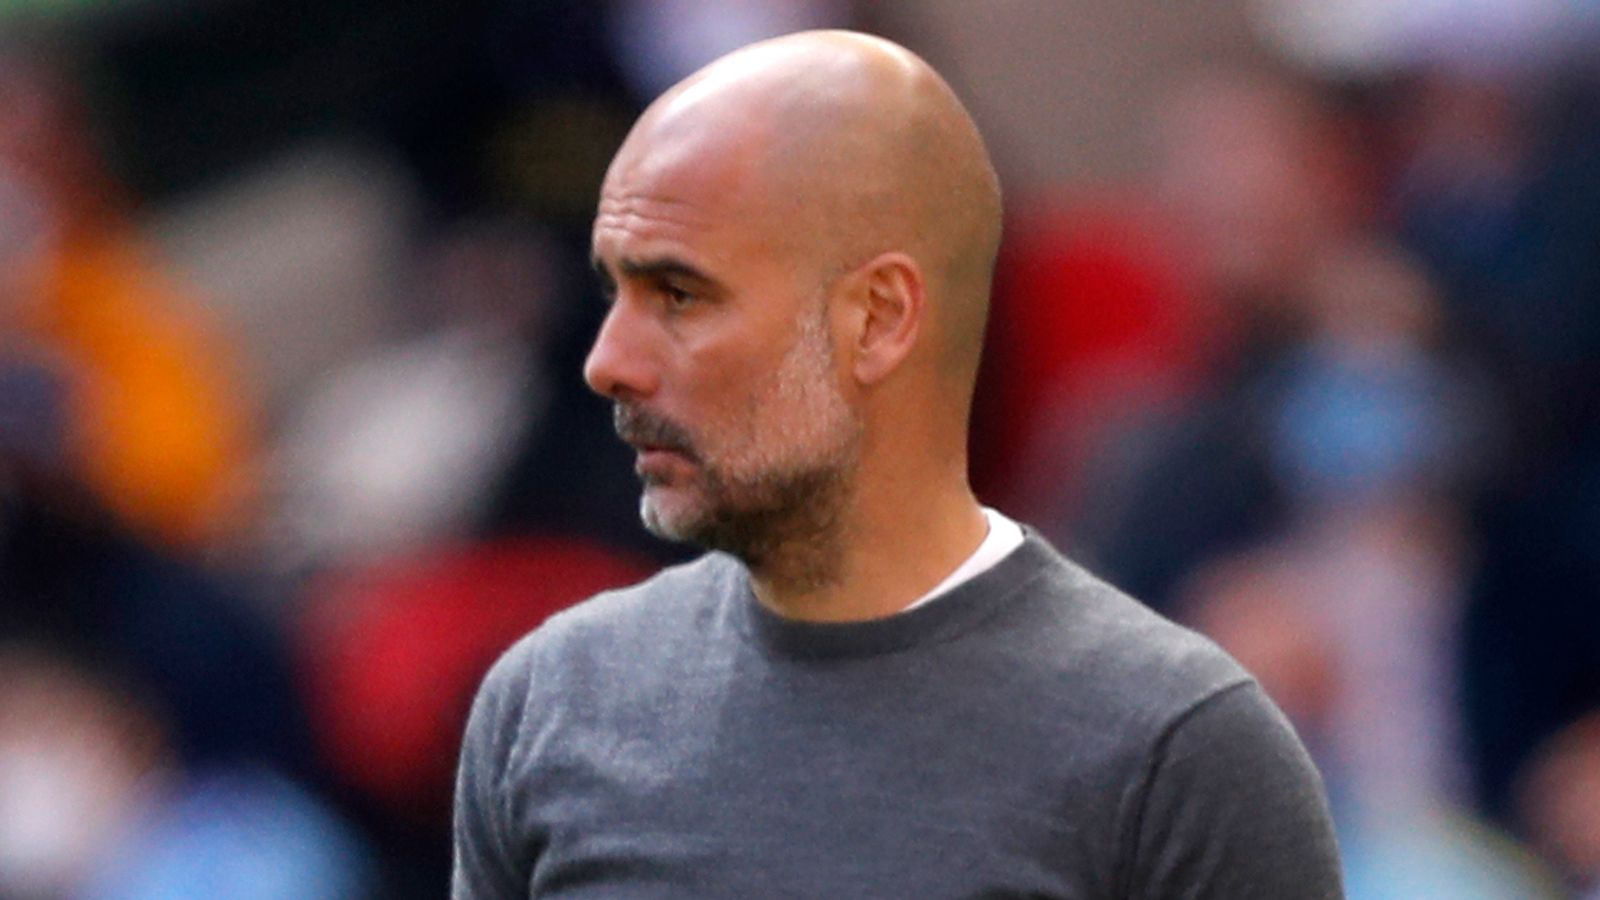 Pep Guardiola: Man City manager says squad focused for Champions League final after Premier League title win